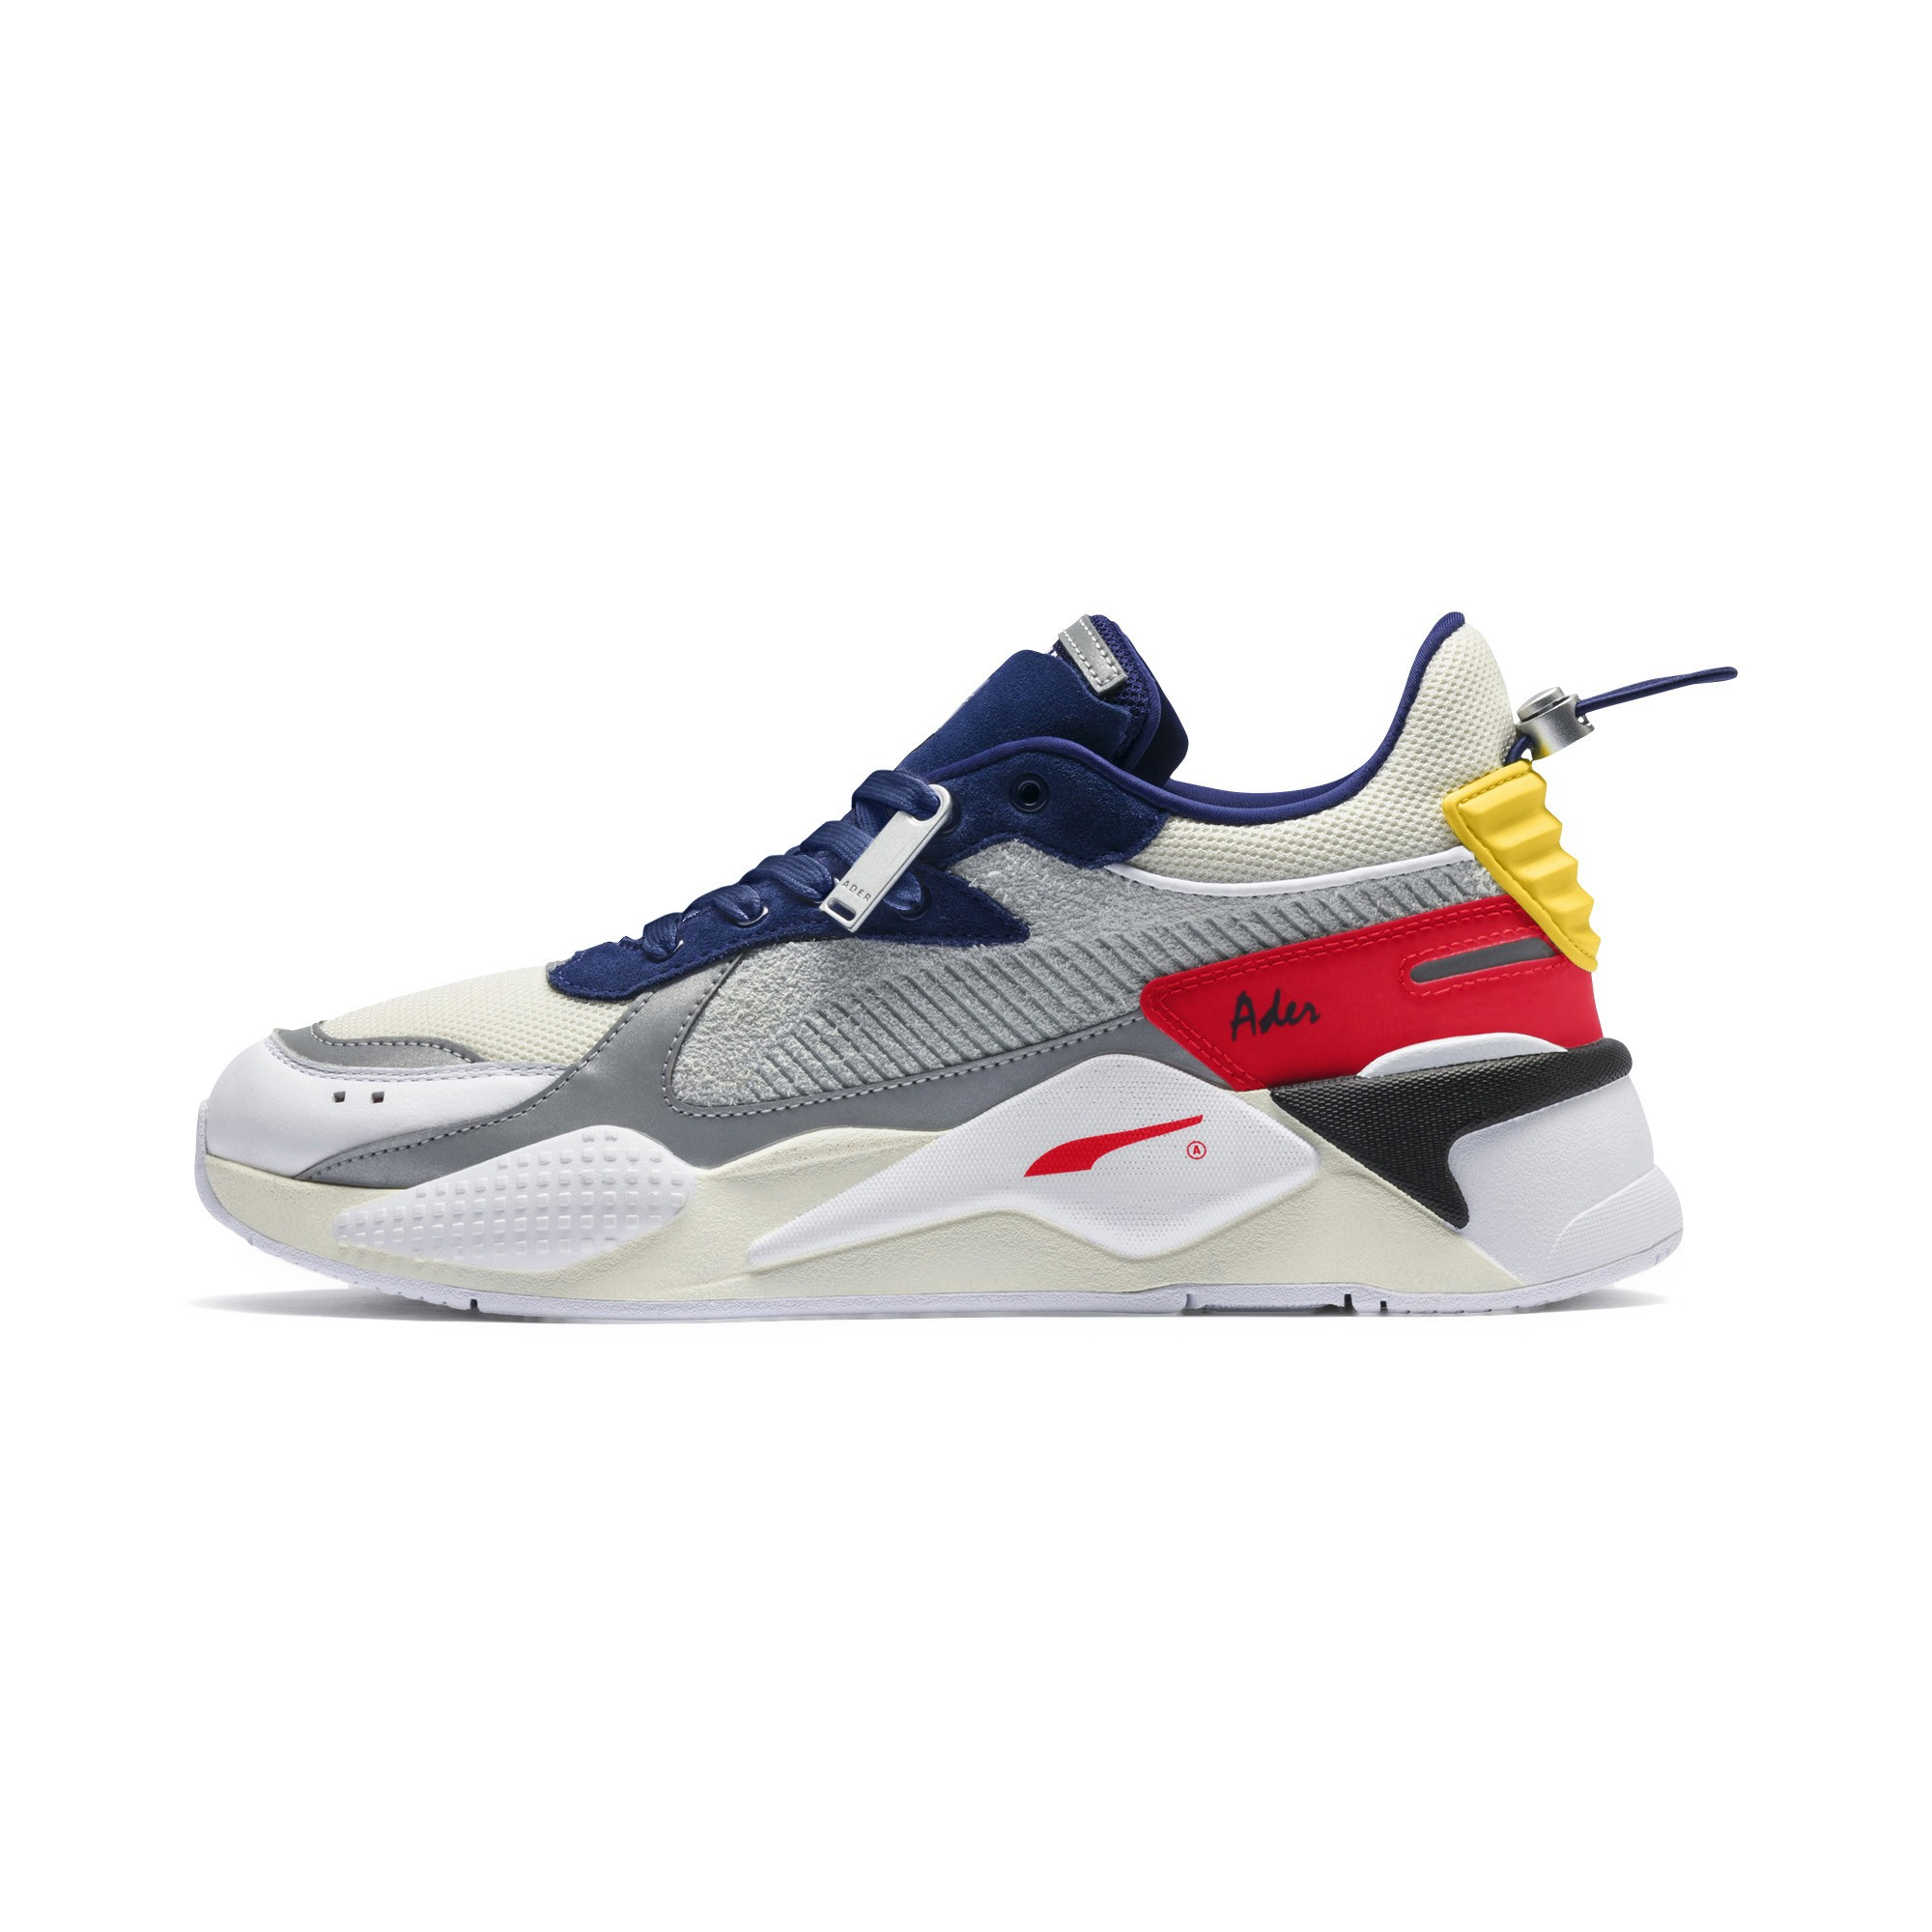 PUMA x ADER ERROR RS-X Sneakers